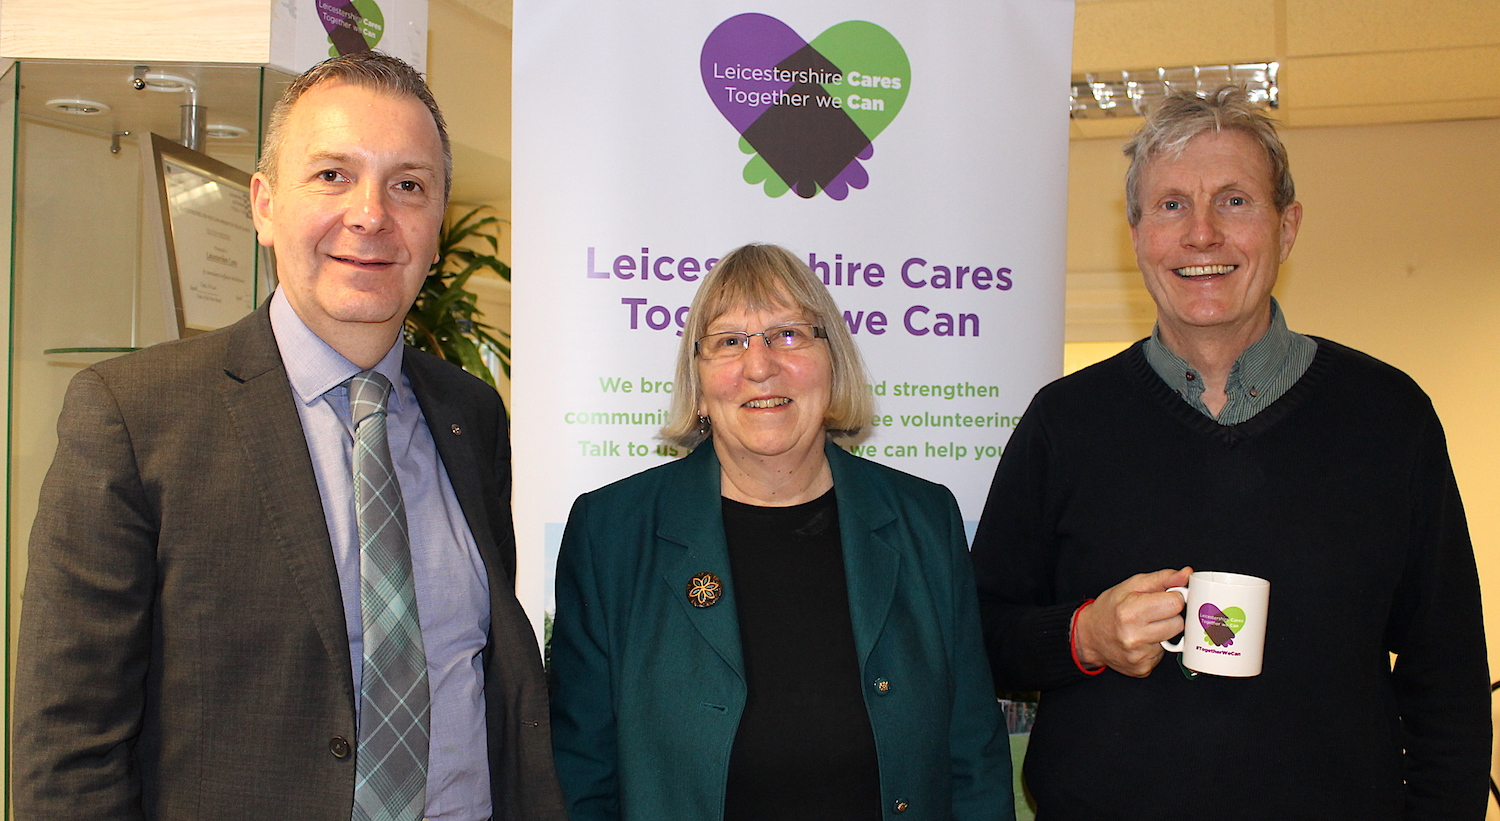 Hinckley & Rugby chief executive Colin Fyfe with Jenny Hand from Reaching People & Kieran Breen from Leicestershire Cares